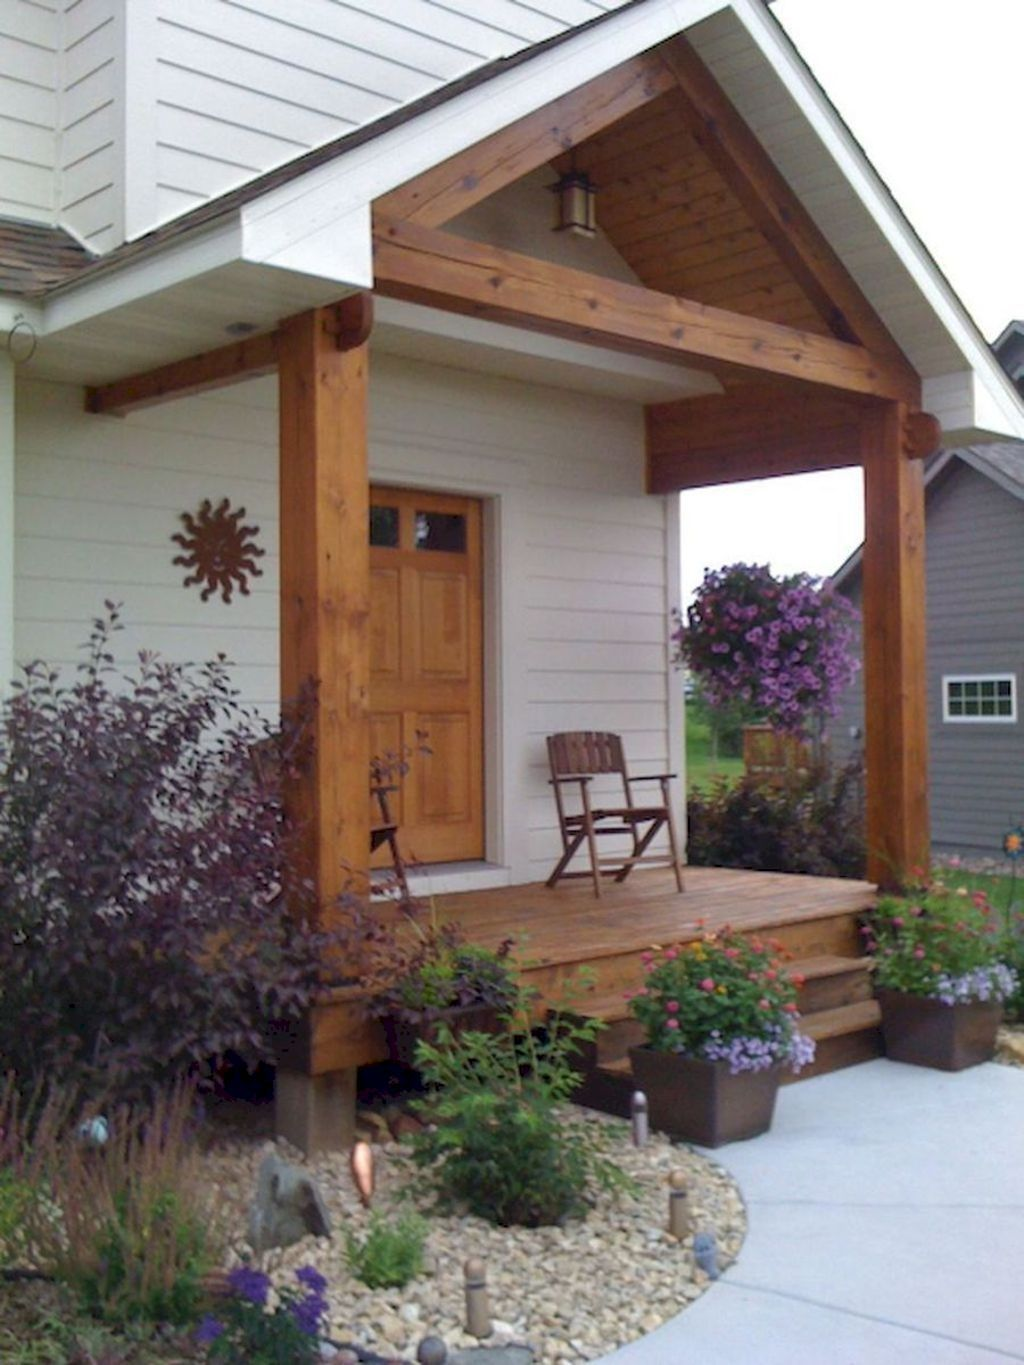 Modern Minecraft Houses Porch Design Ranch House Additions: 80 Modern Farmhouse Front Porch Decorating Ideas